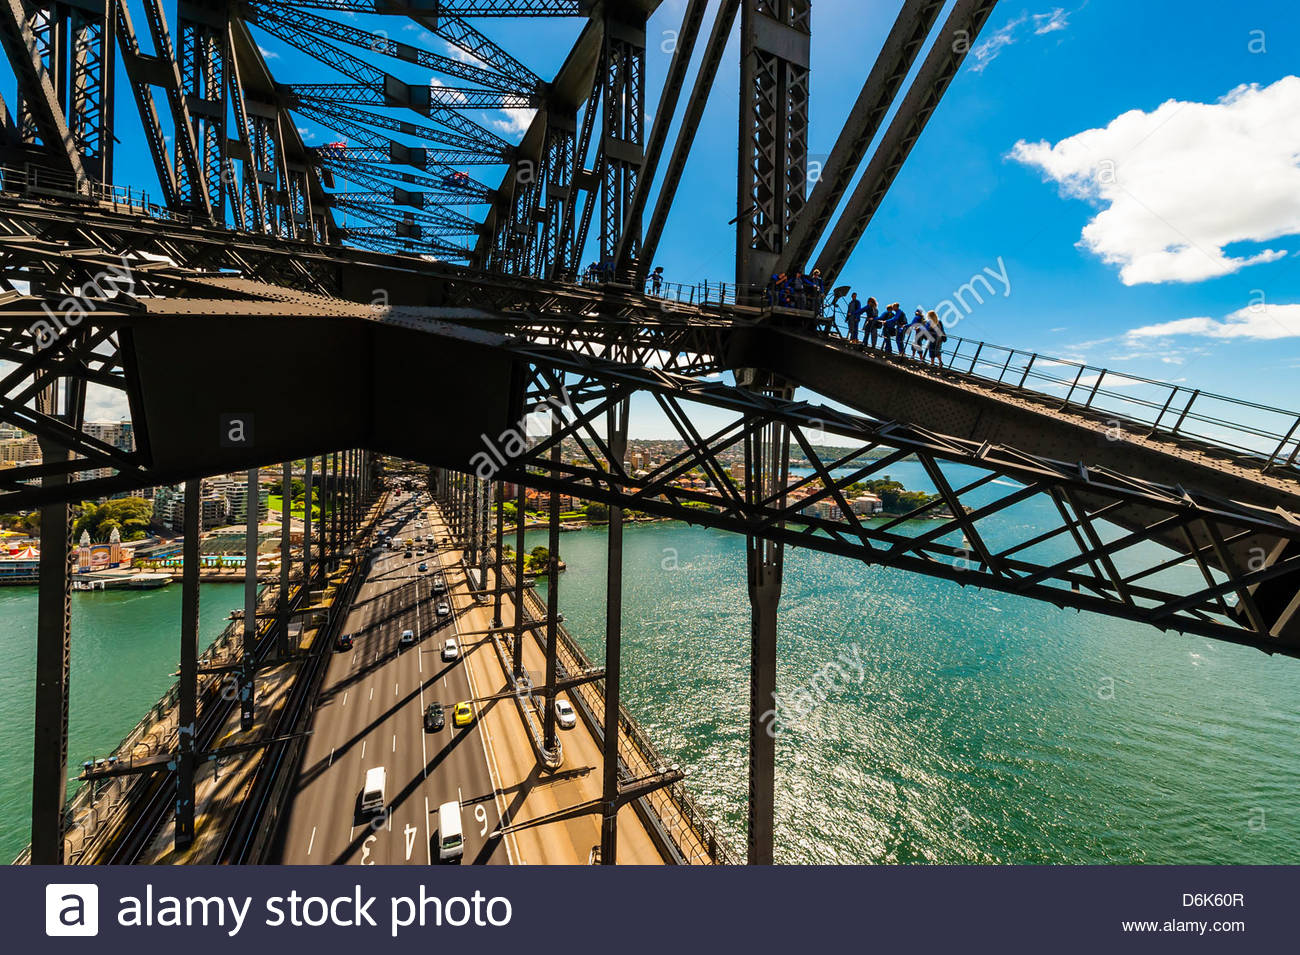 Les gens de monter au sommet de la Sydney Harbour Bridge, Sydney, BridgeClimb Sydney, New South Wales, Australia Photo Stock